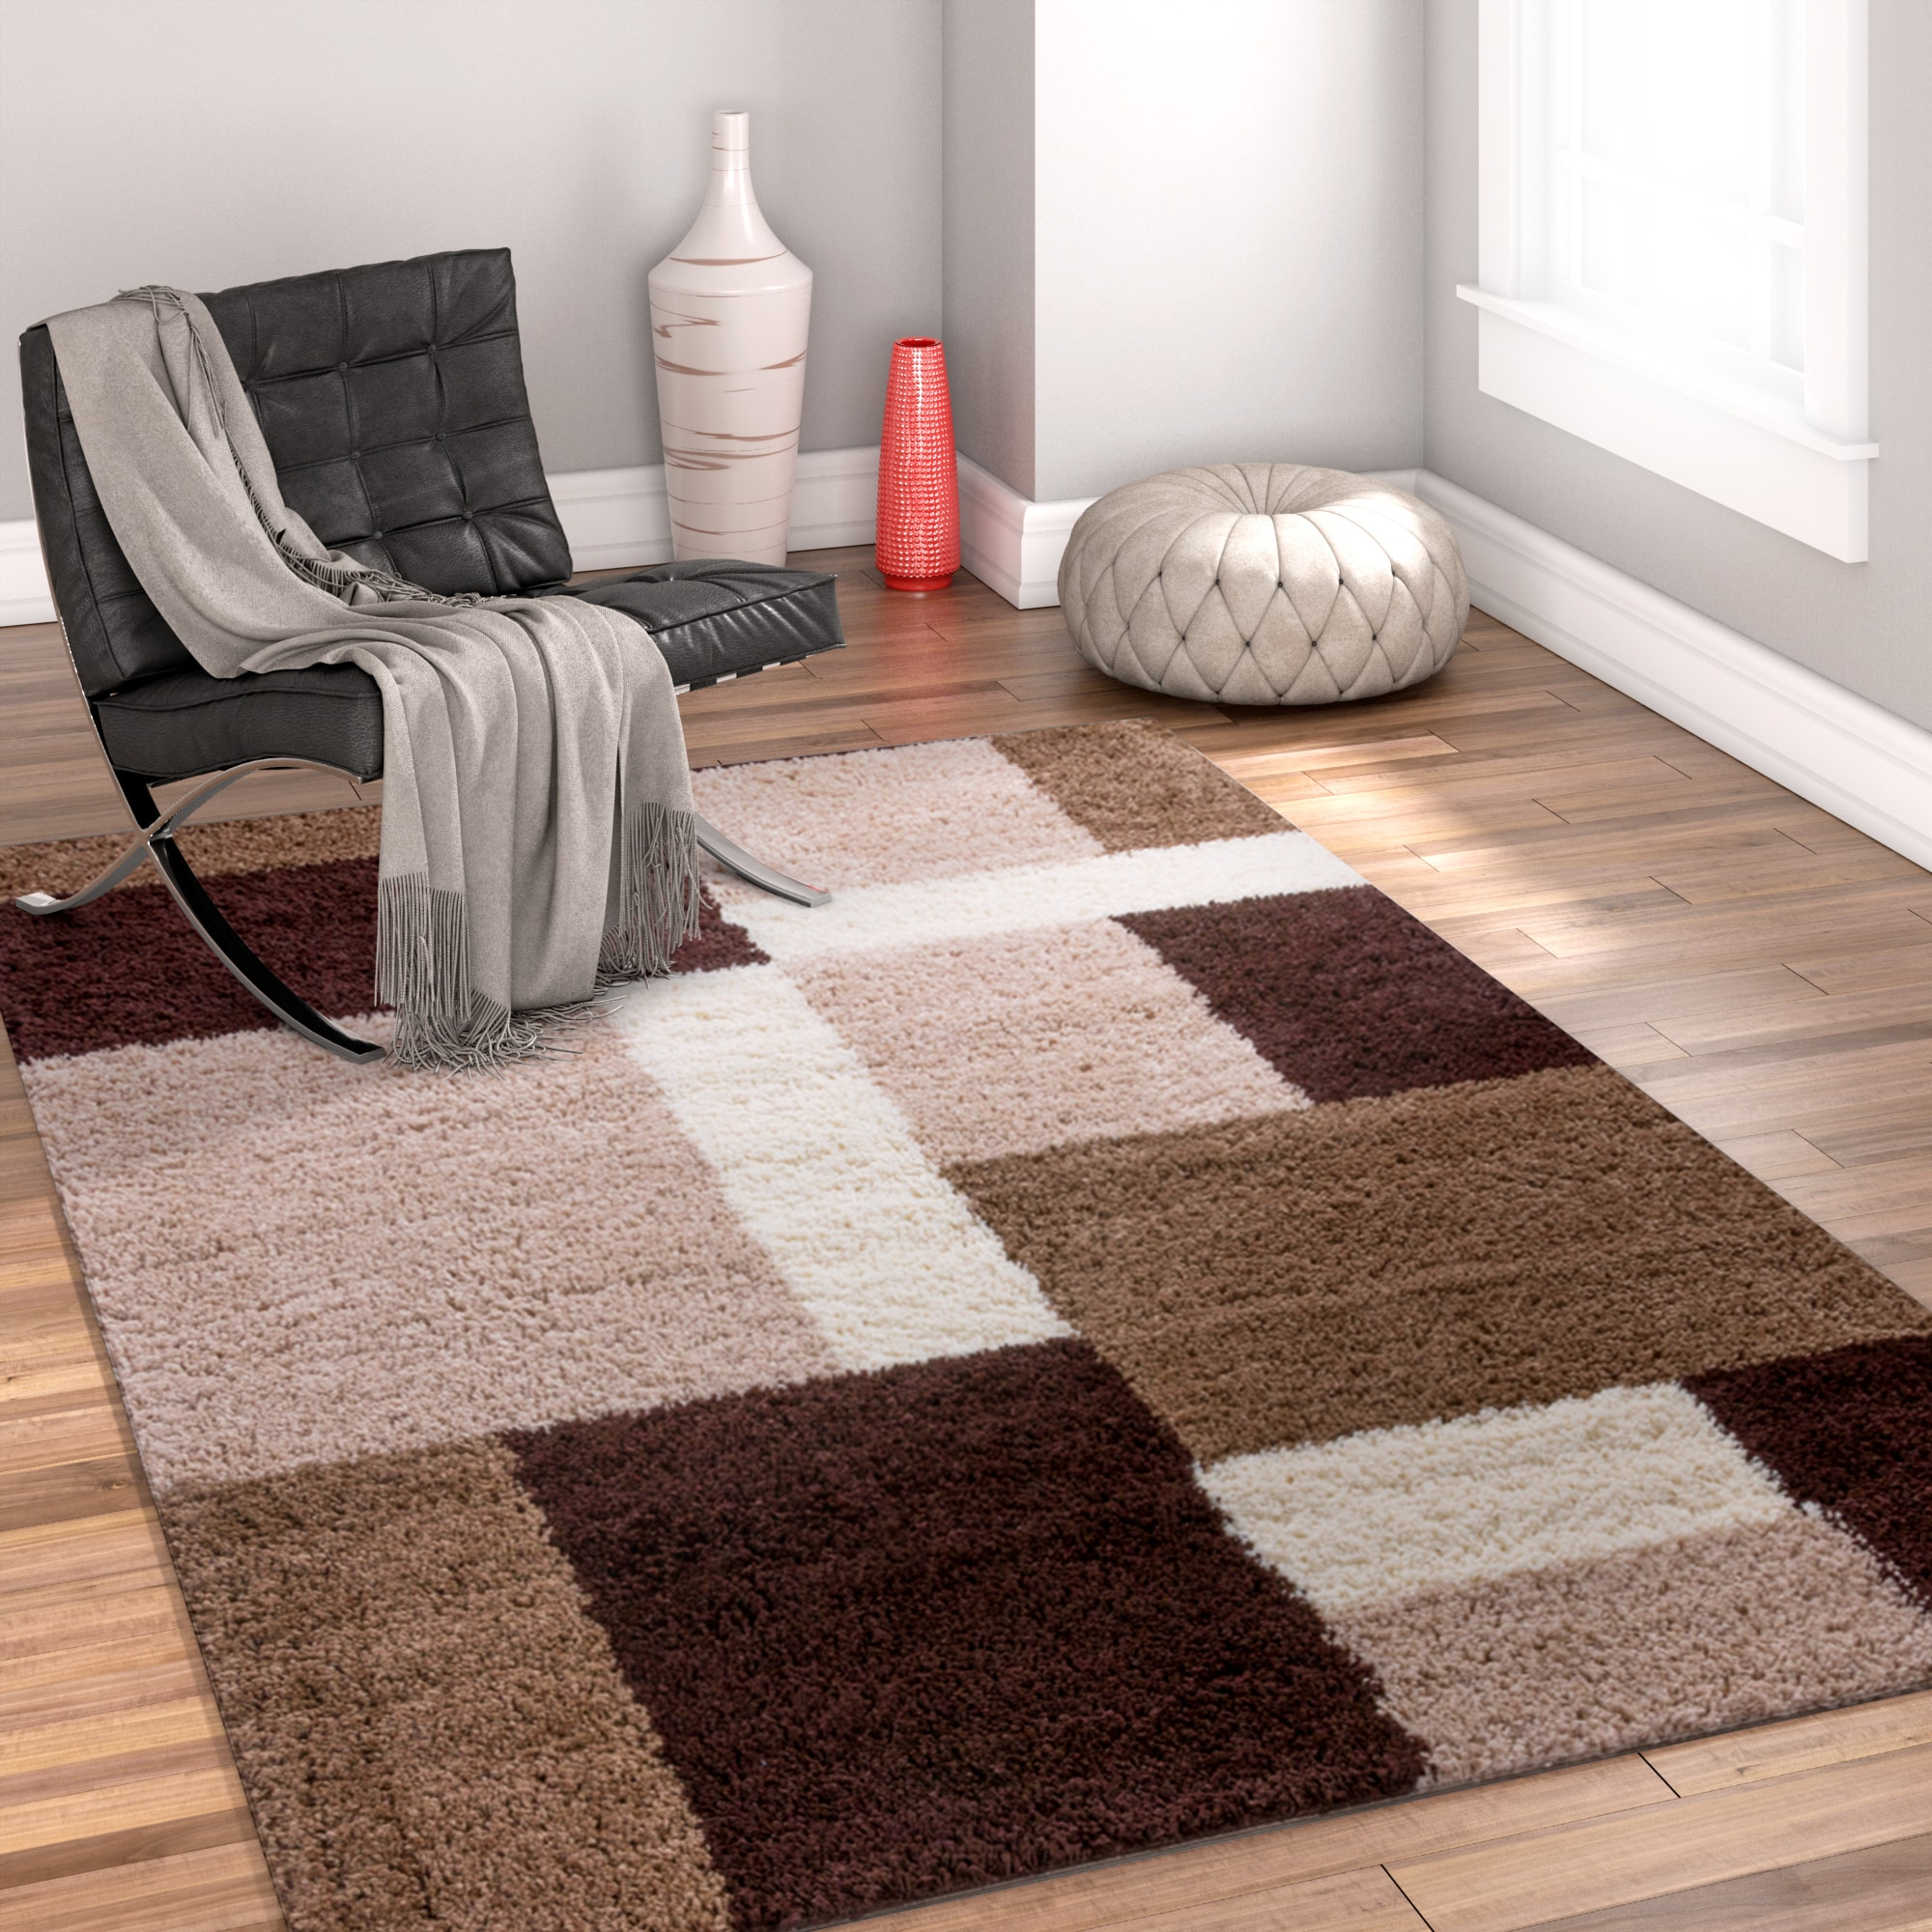 Well Woven Modern Geometric Squares Brown Area Rug - 67 x 910 (Brown)